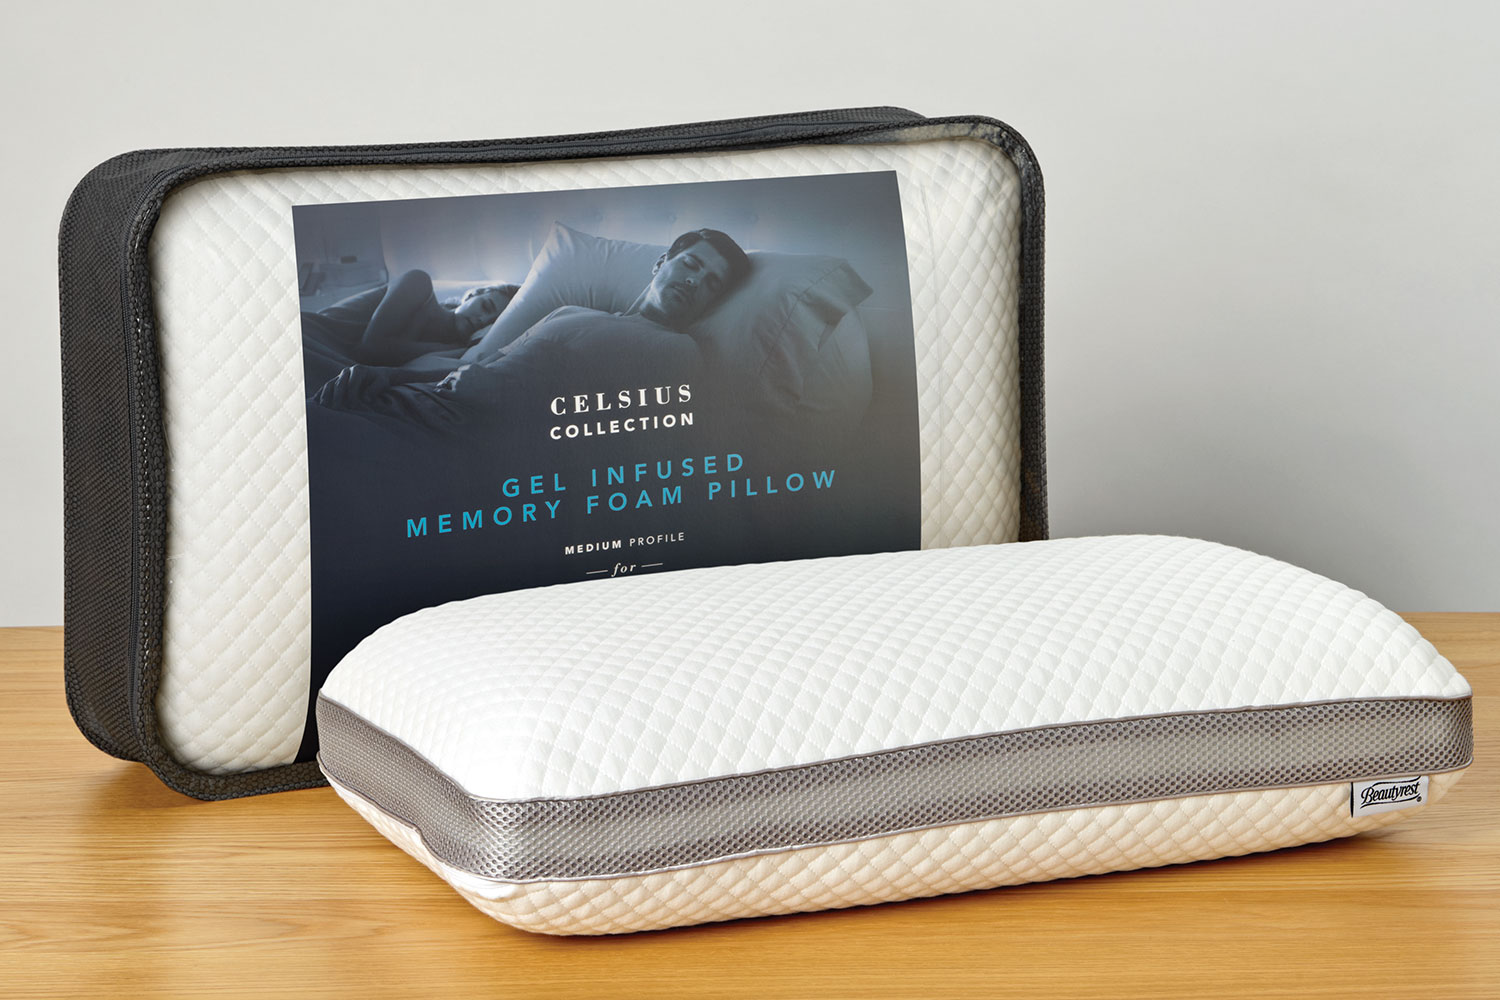 Gel Infused Memory Foam Pillow Celsius Mid Profile Gel Infused Memory Foam Pillow By Beautyrest